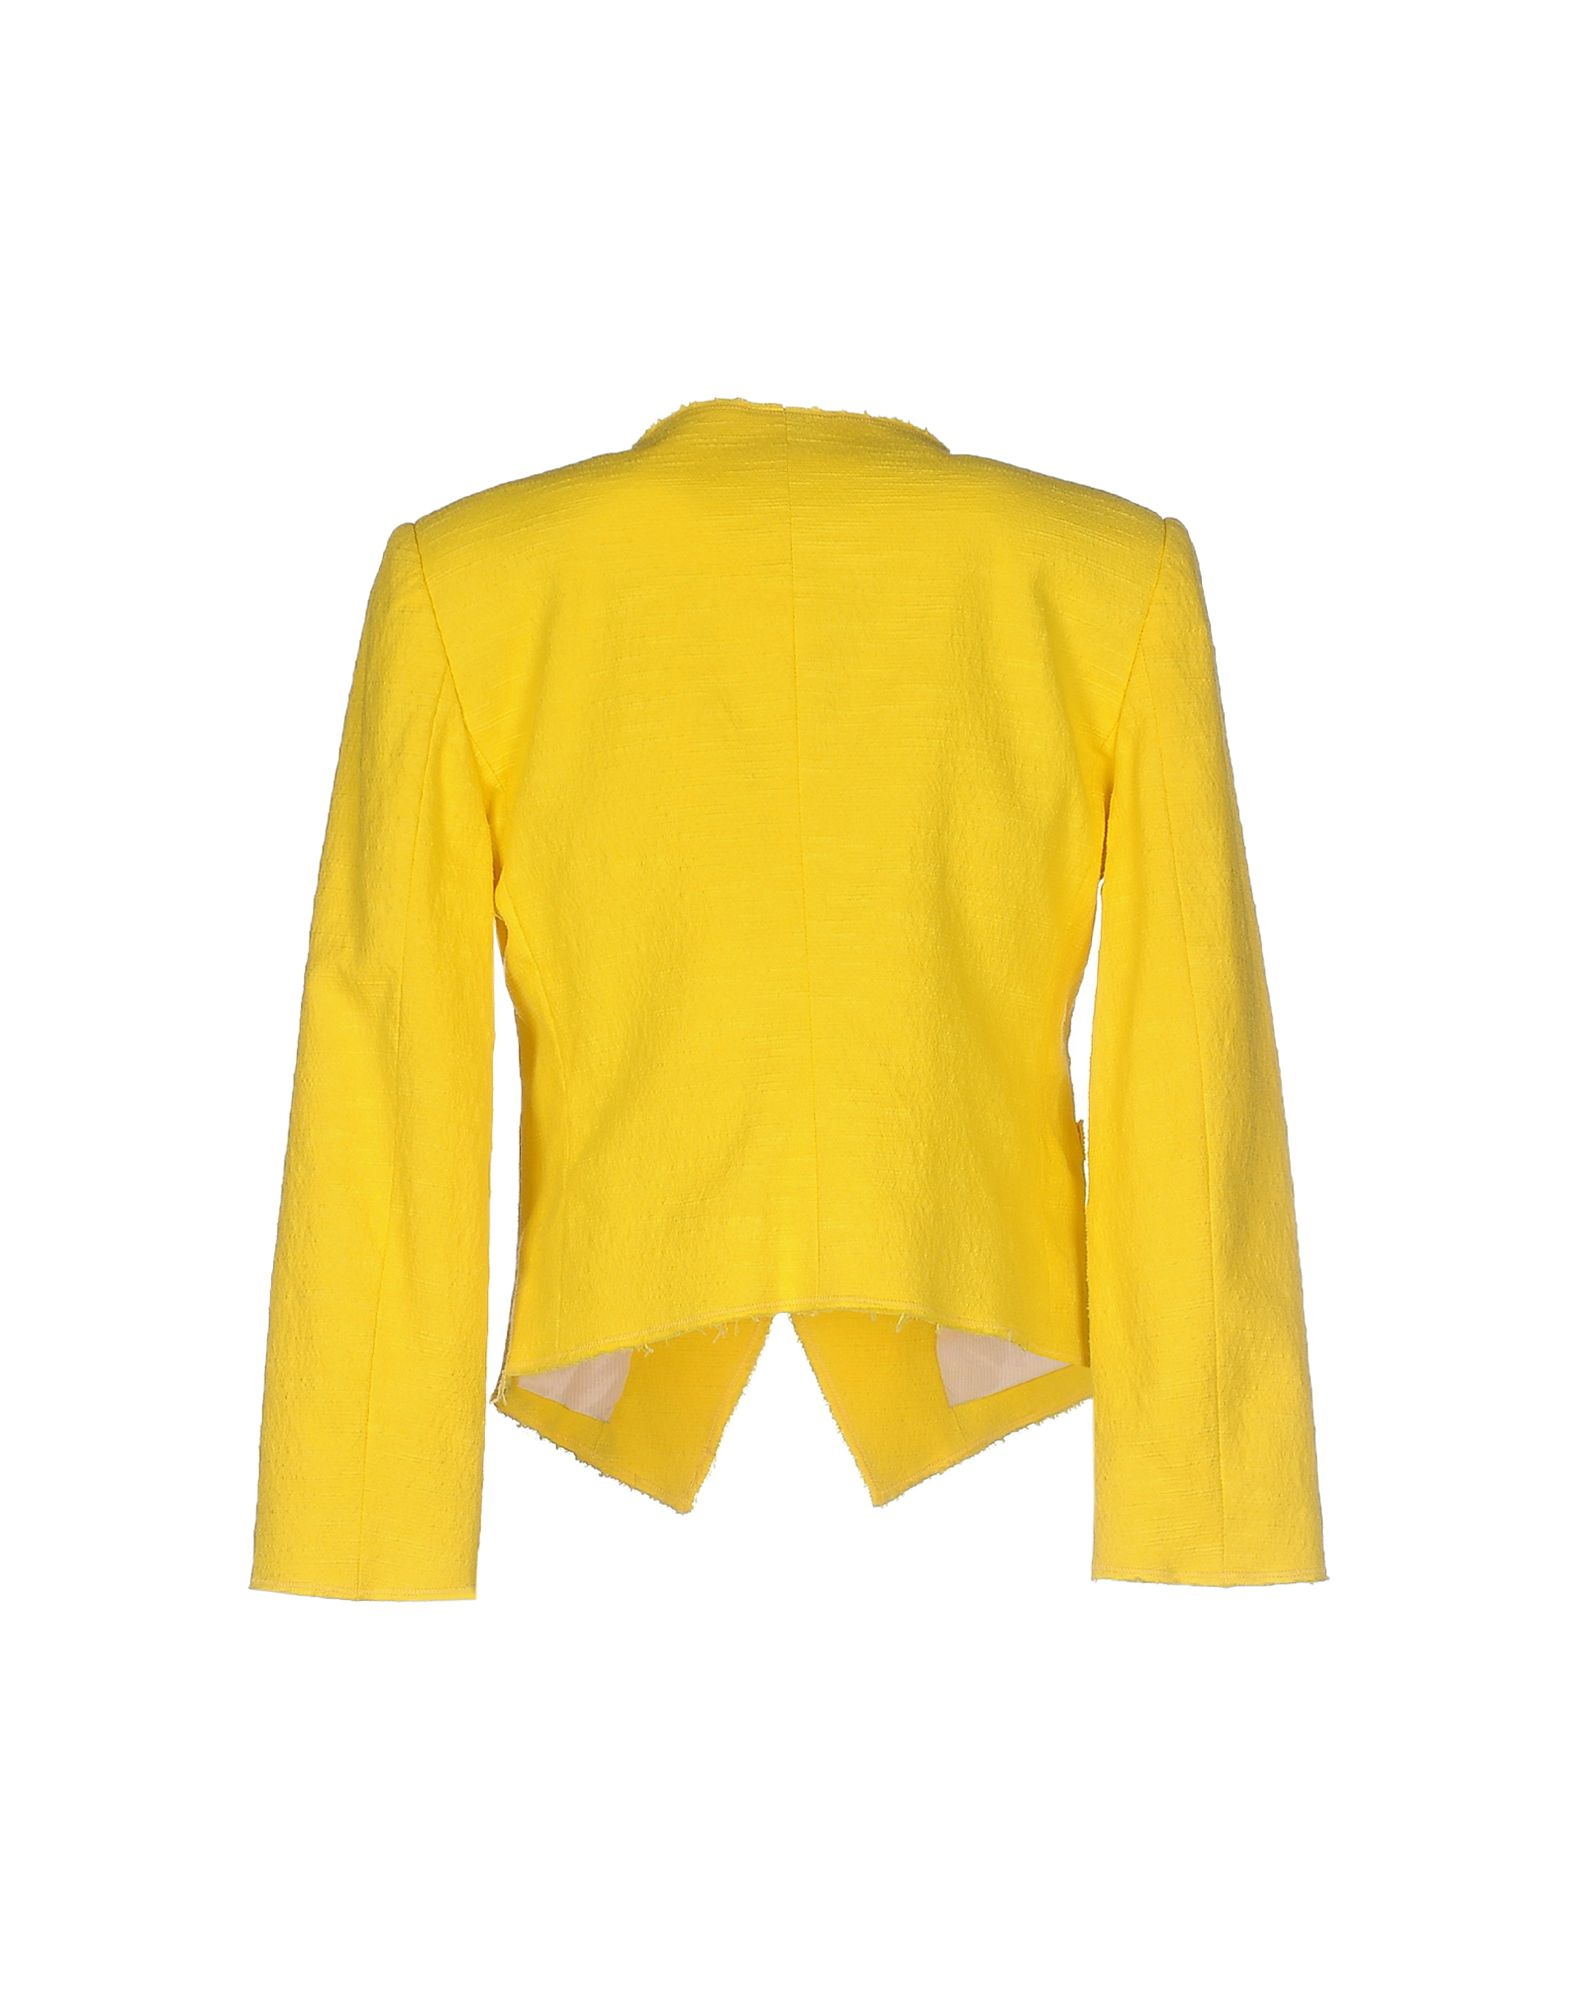 Band of Outsiders Tweed Blazer in Yellow